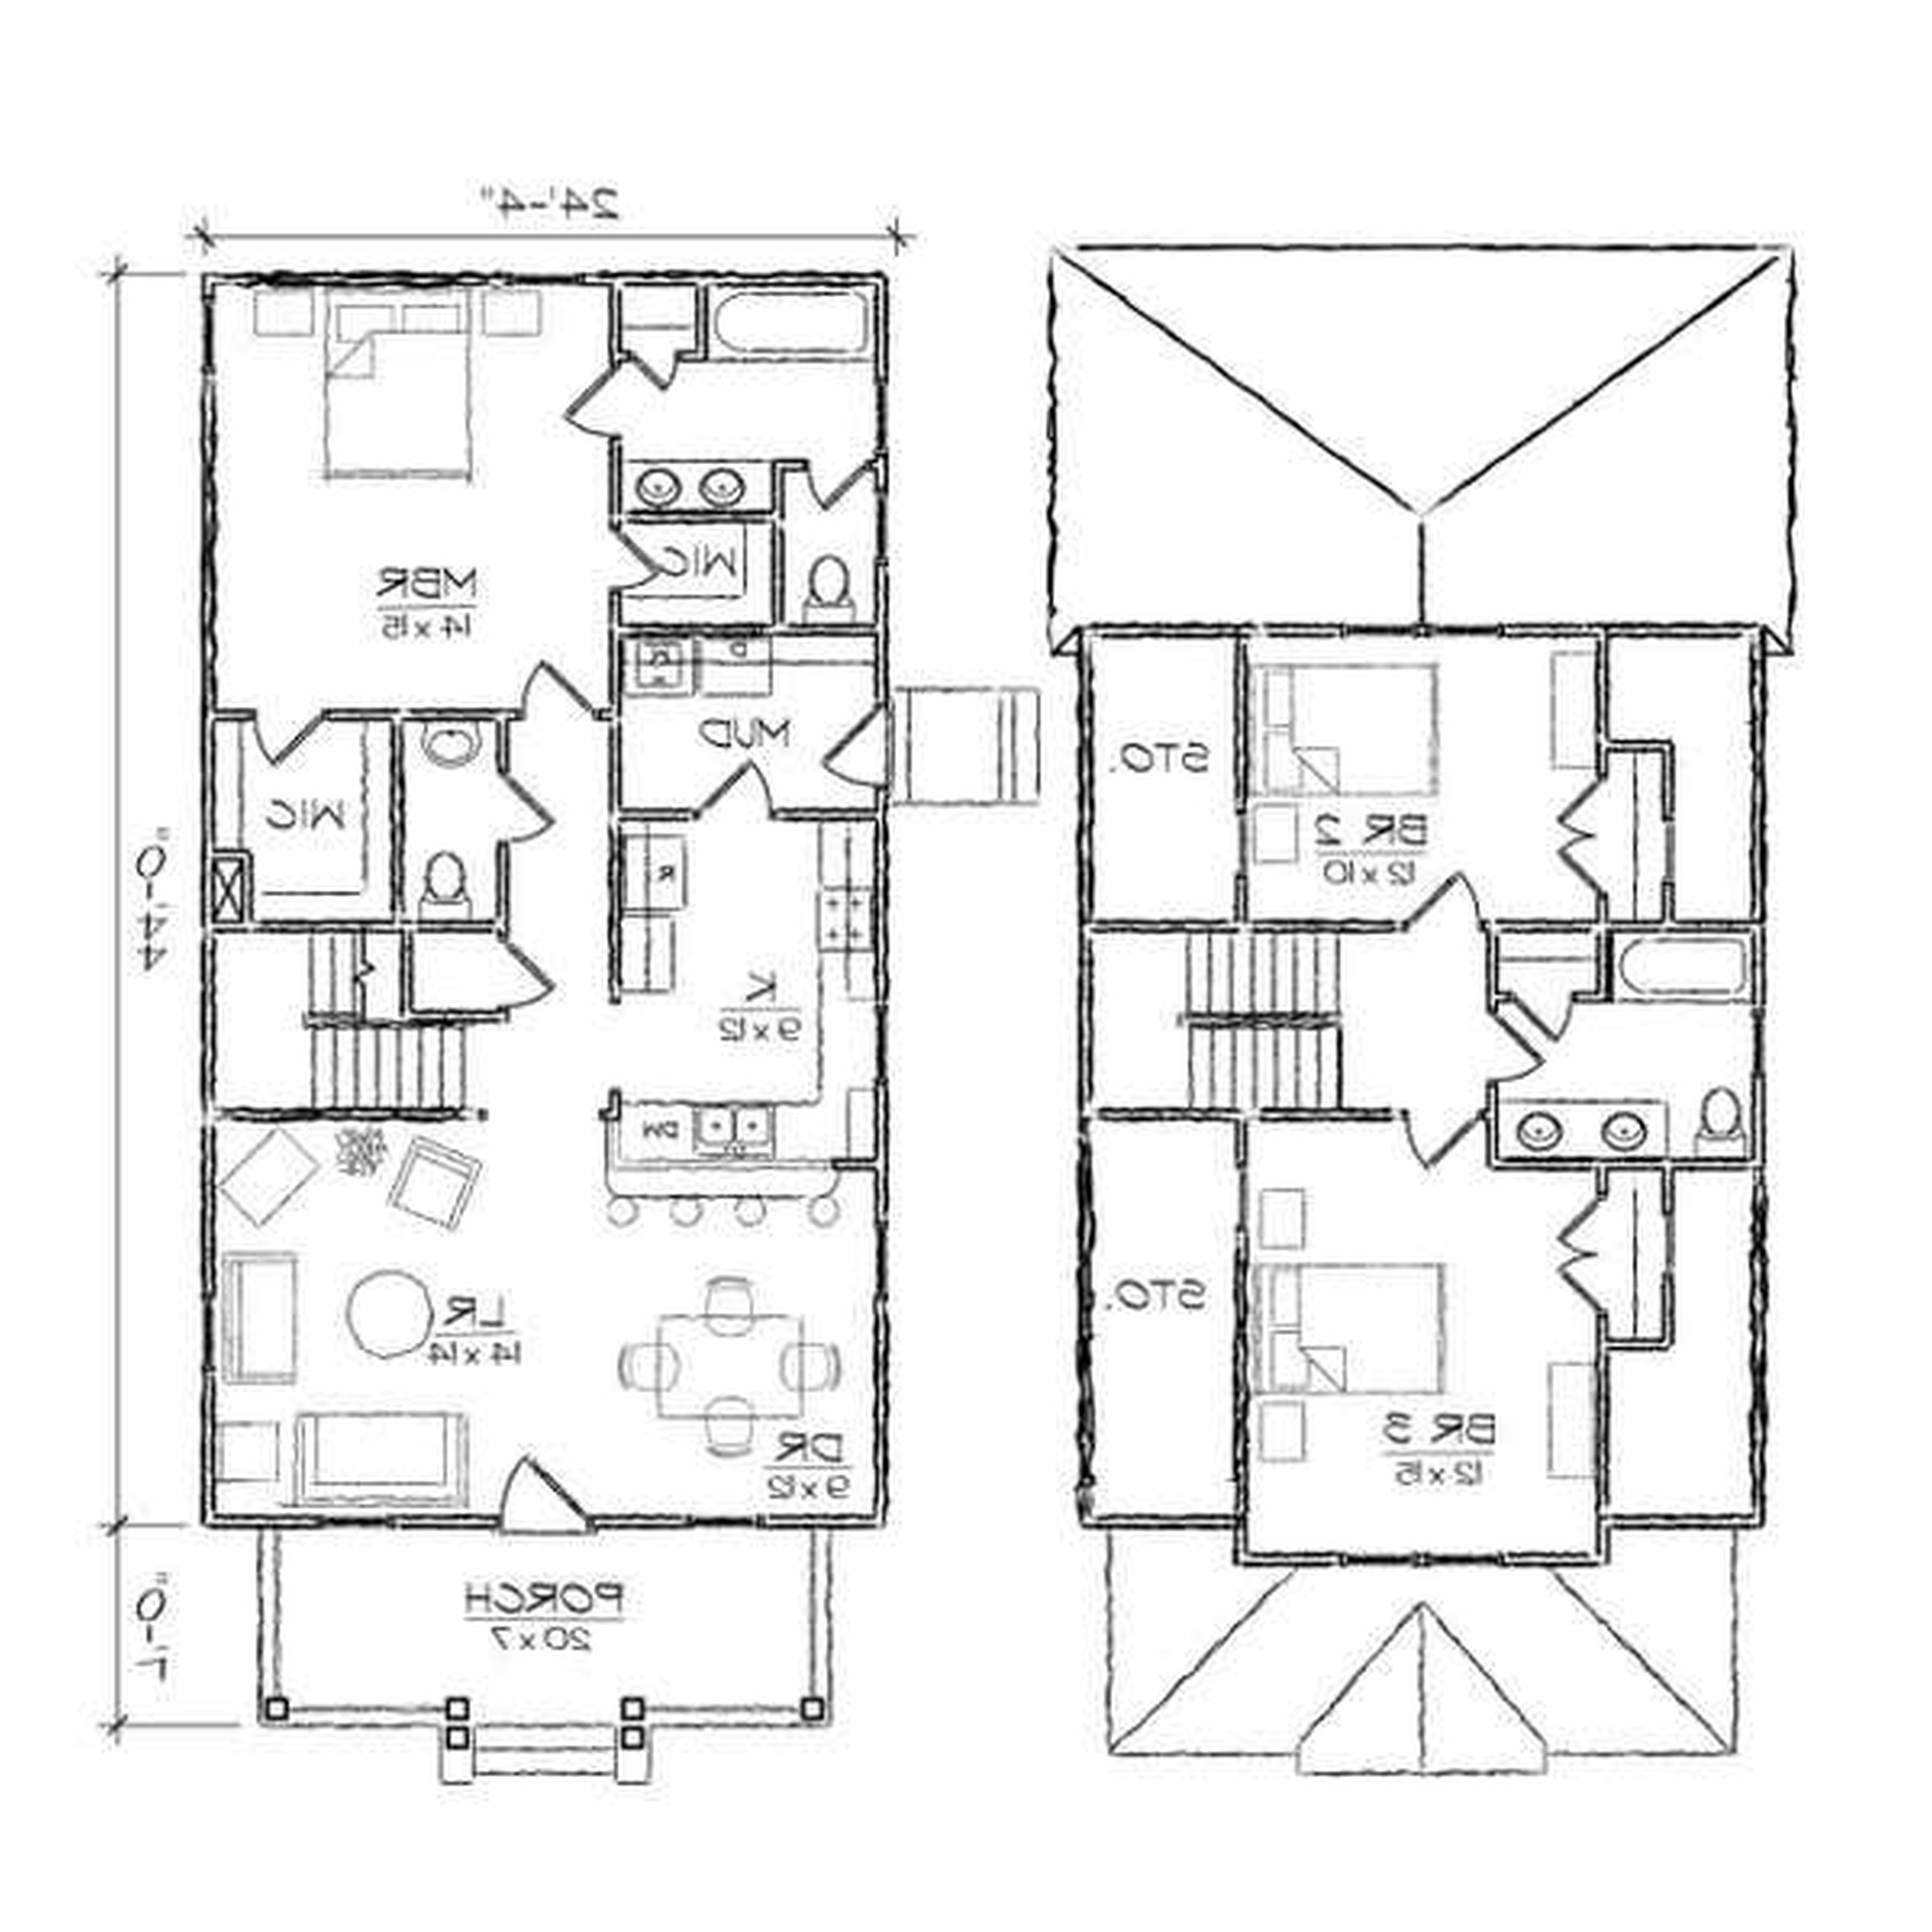 House plans small house plans tiny home floor plans home plans tiny - Lavish Tiny Houses Tumbleweed Floor Plans And Tiny House Floor Plans 200 Sq Ft